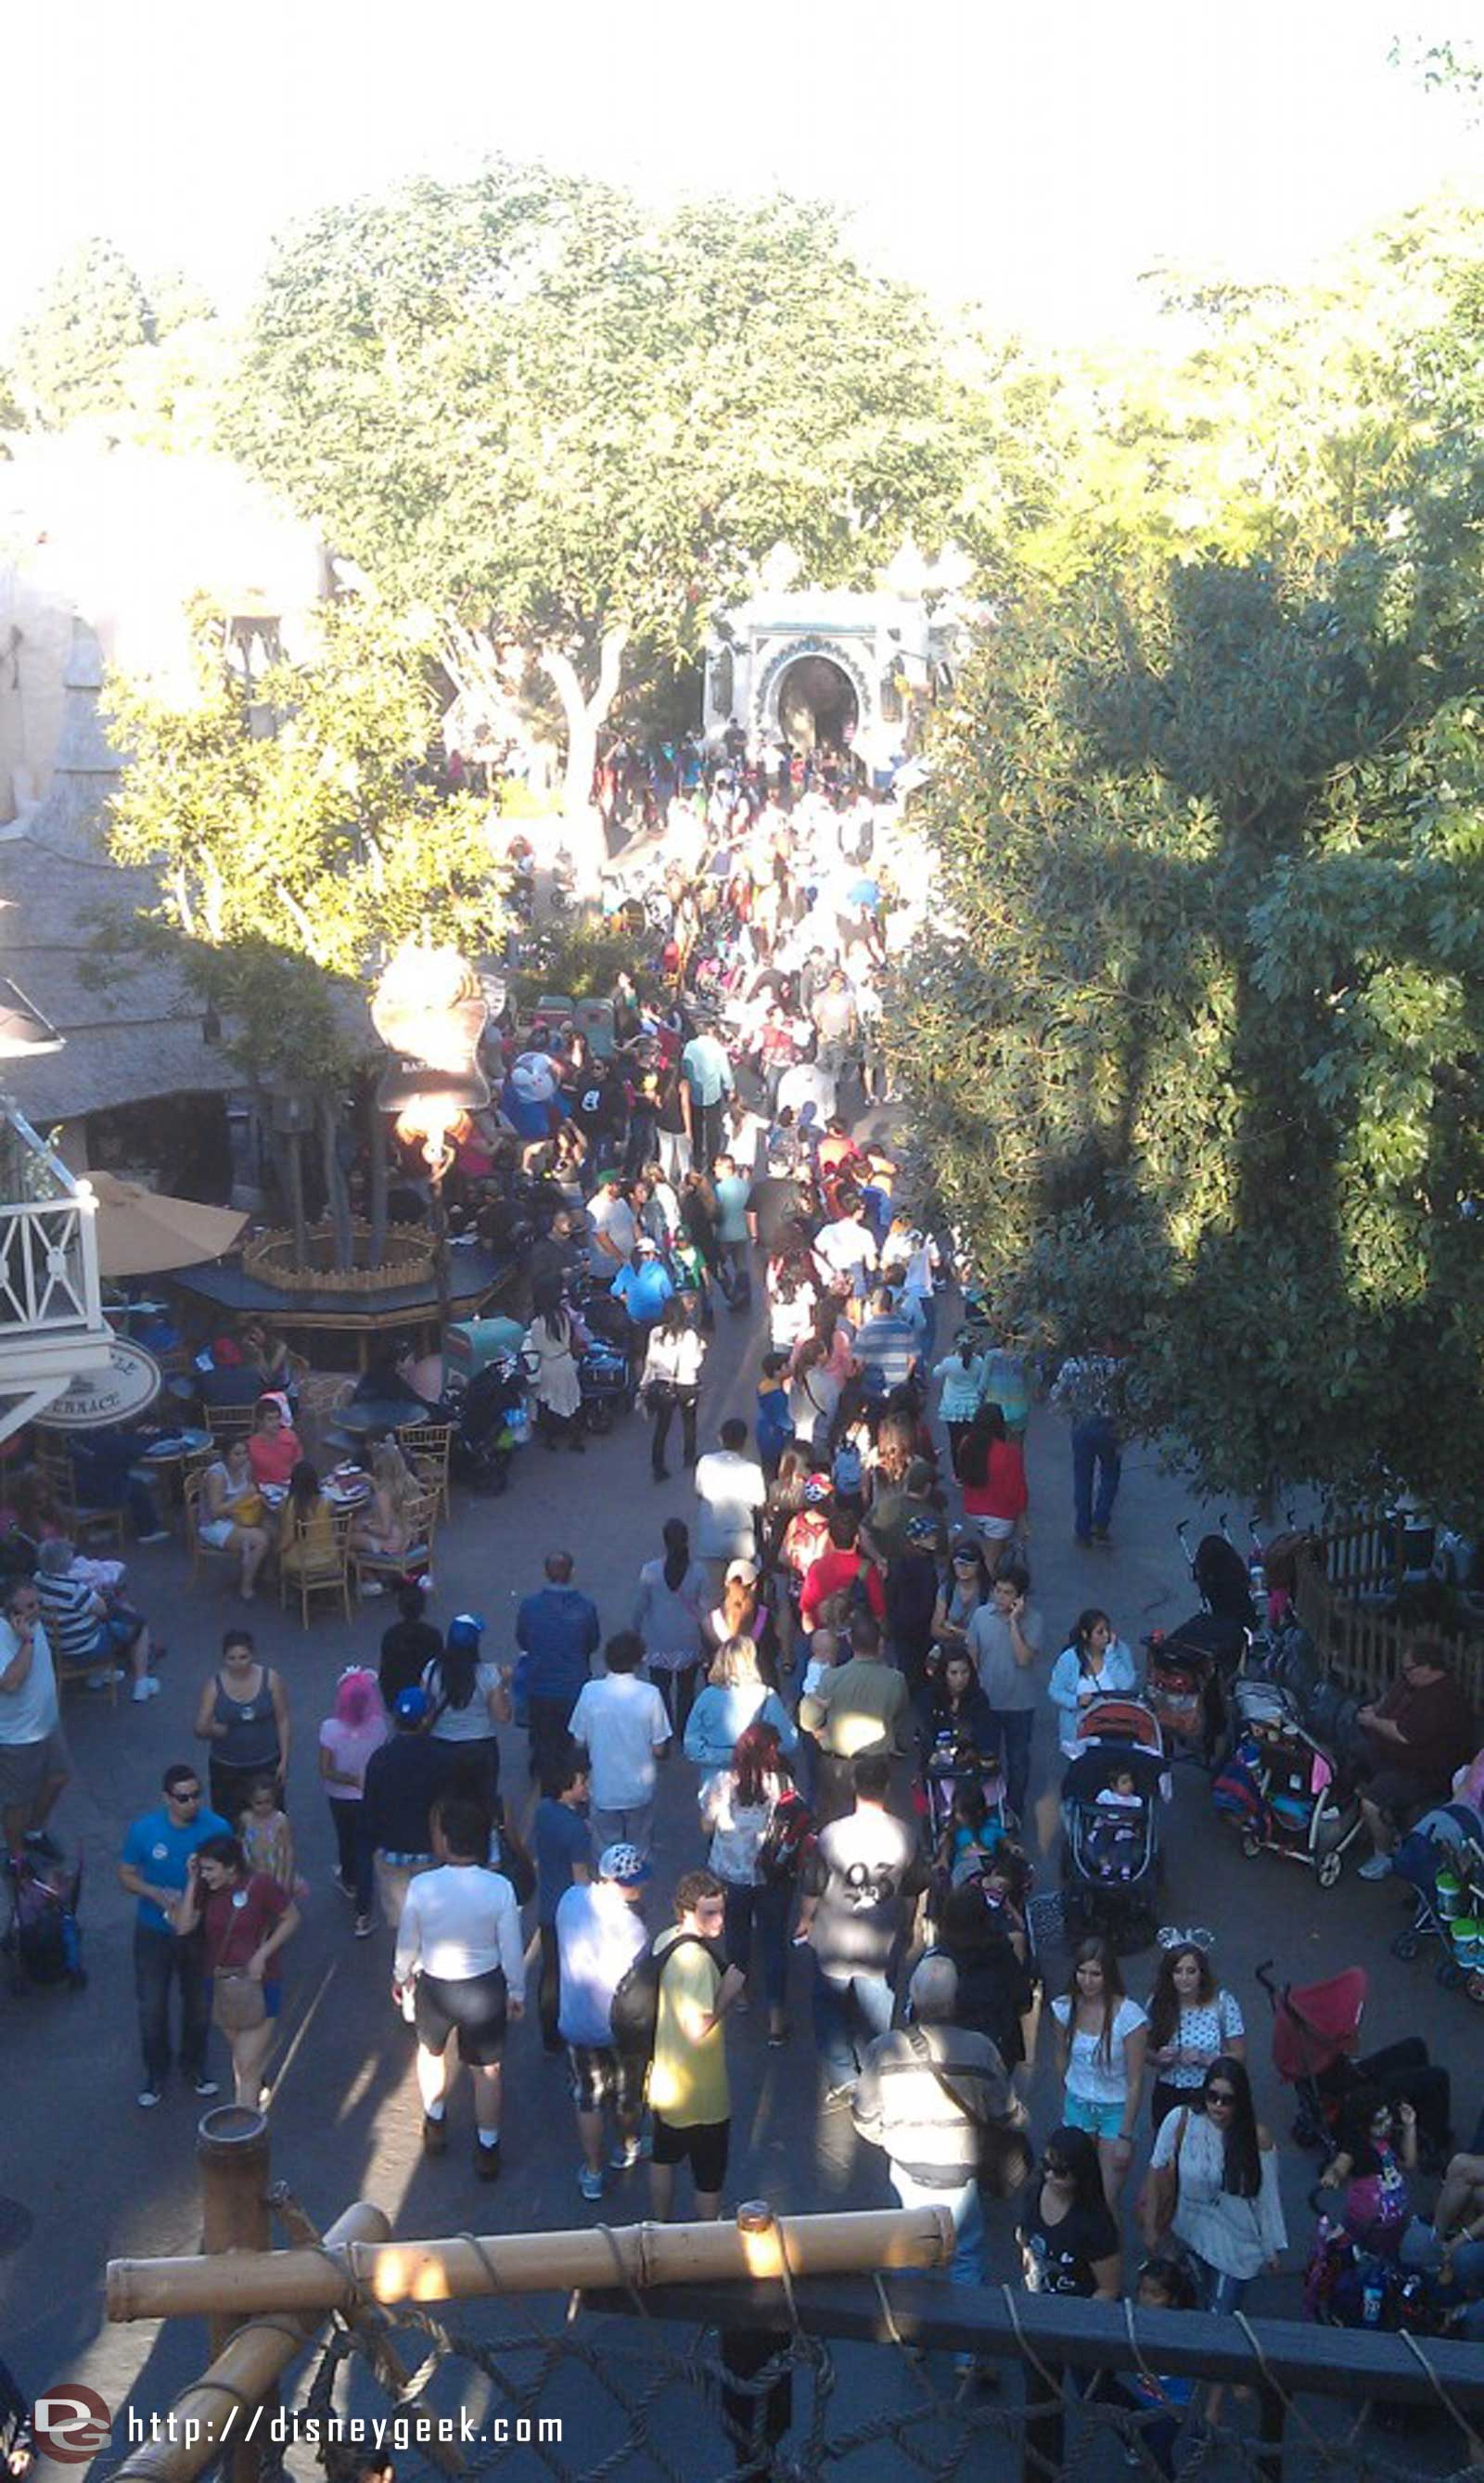 A look down at a busy Adventureland from Tarzan's Treehouse